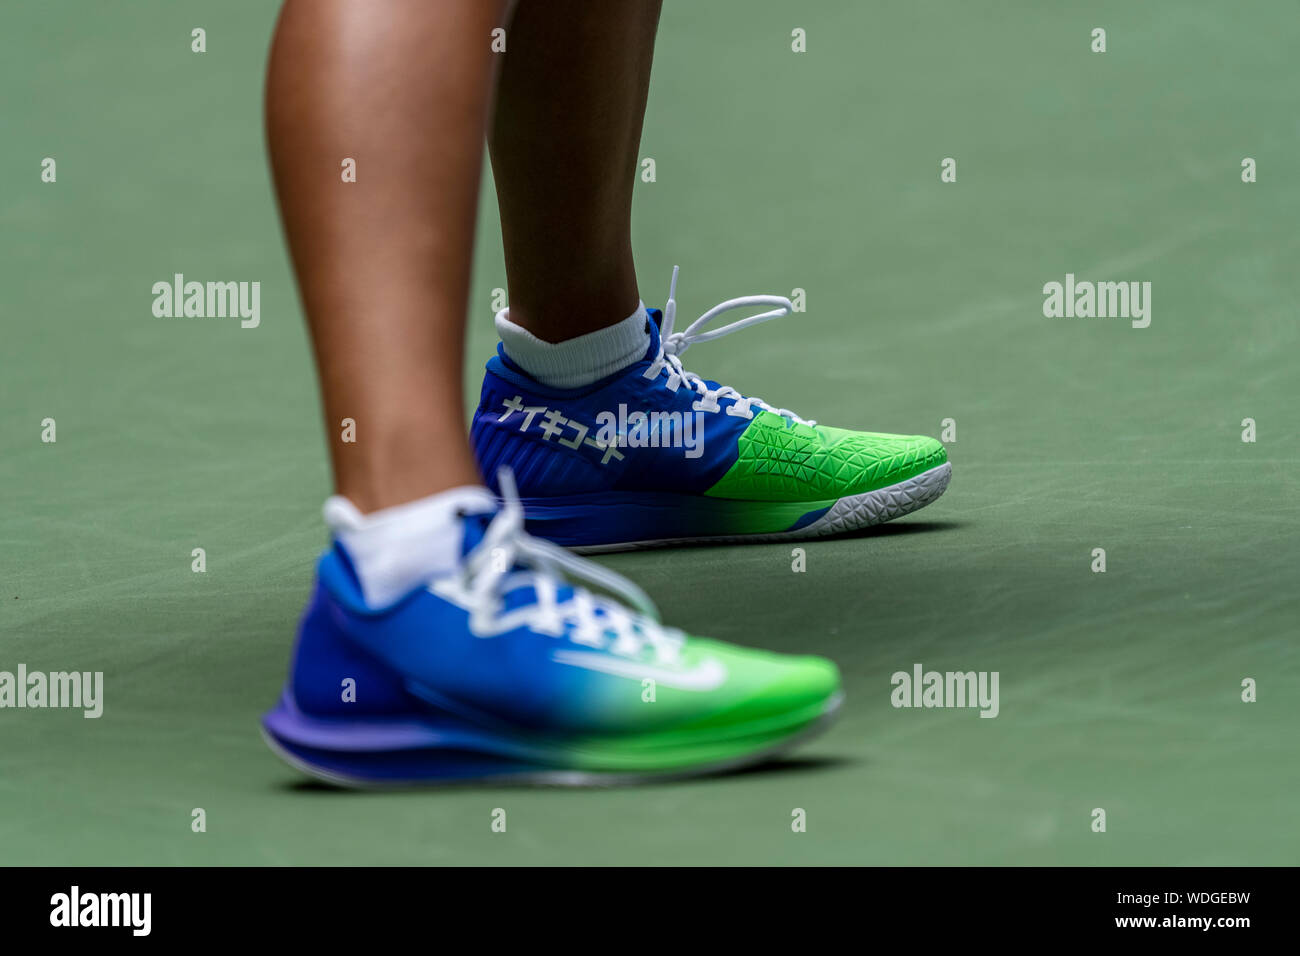 Naomi Osaka Jpn Competing In The First Round Of The 2019 Us Open Tennis Wearing Her Custom Nike Shoes Stock Photo Alamy